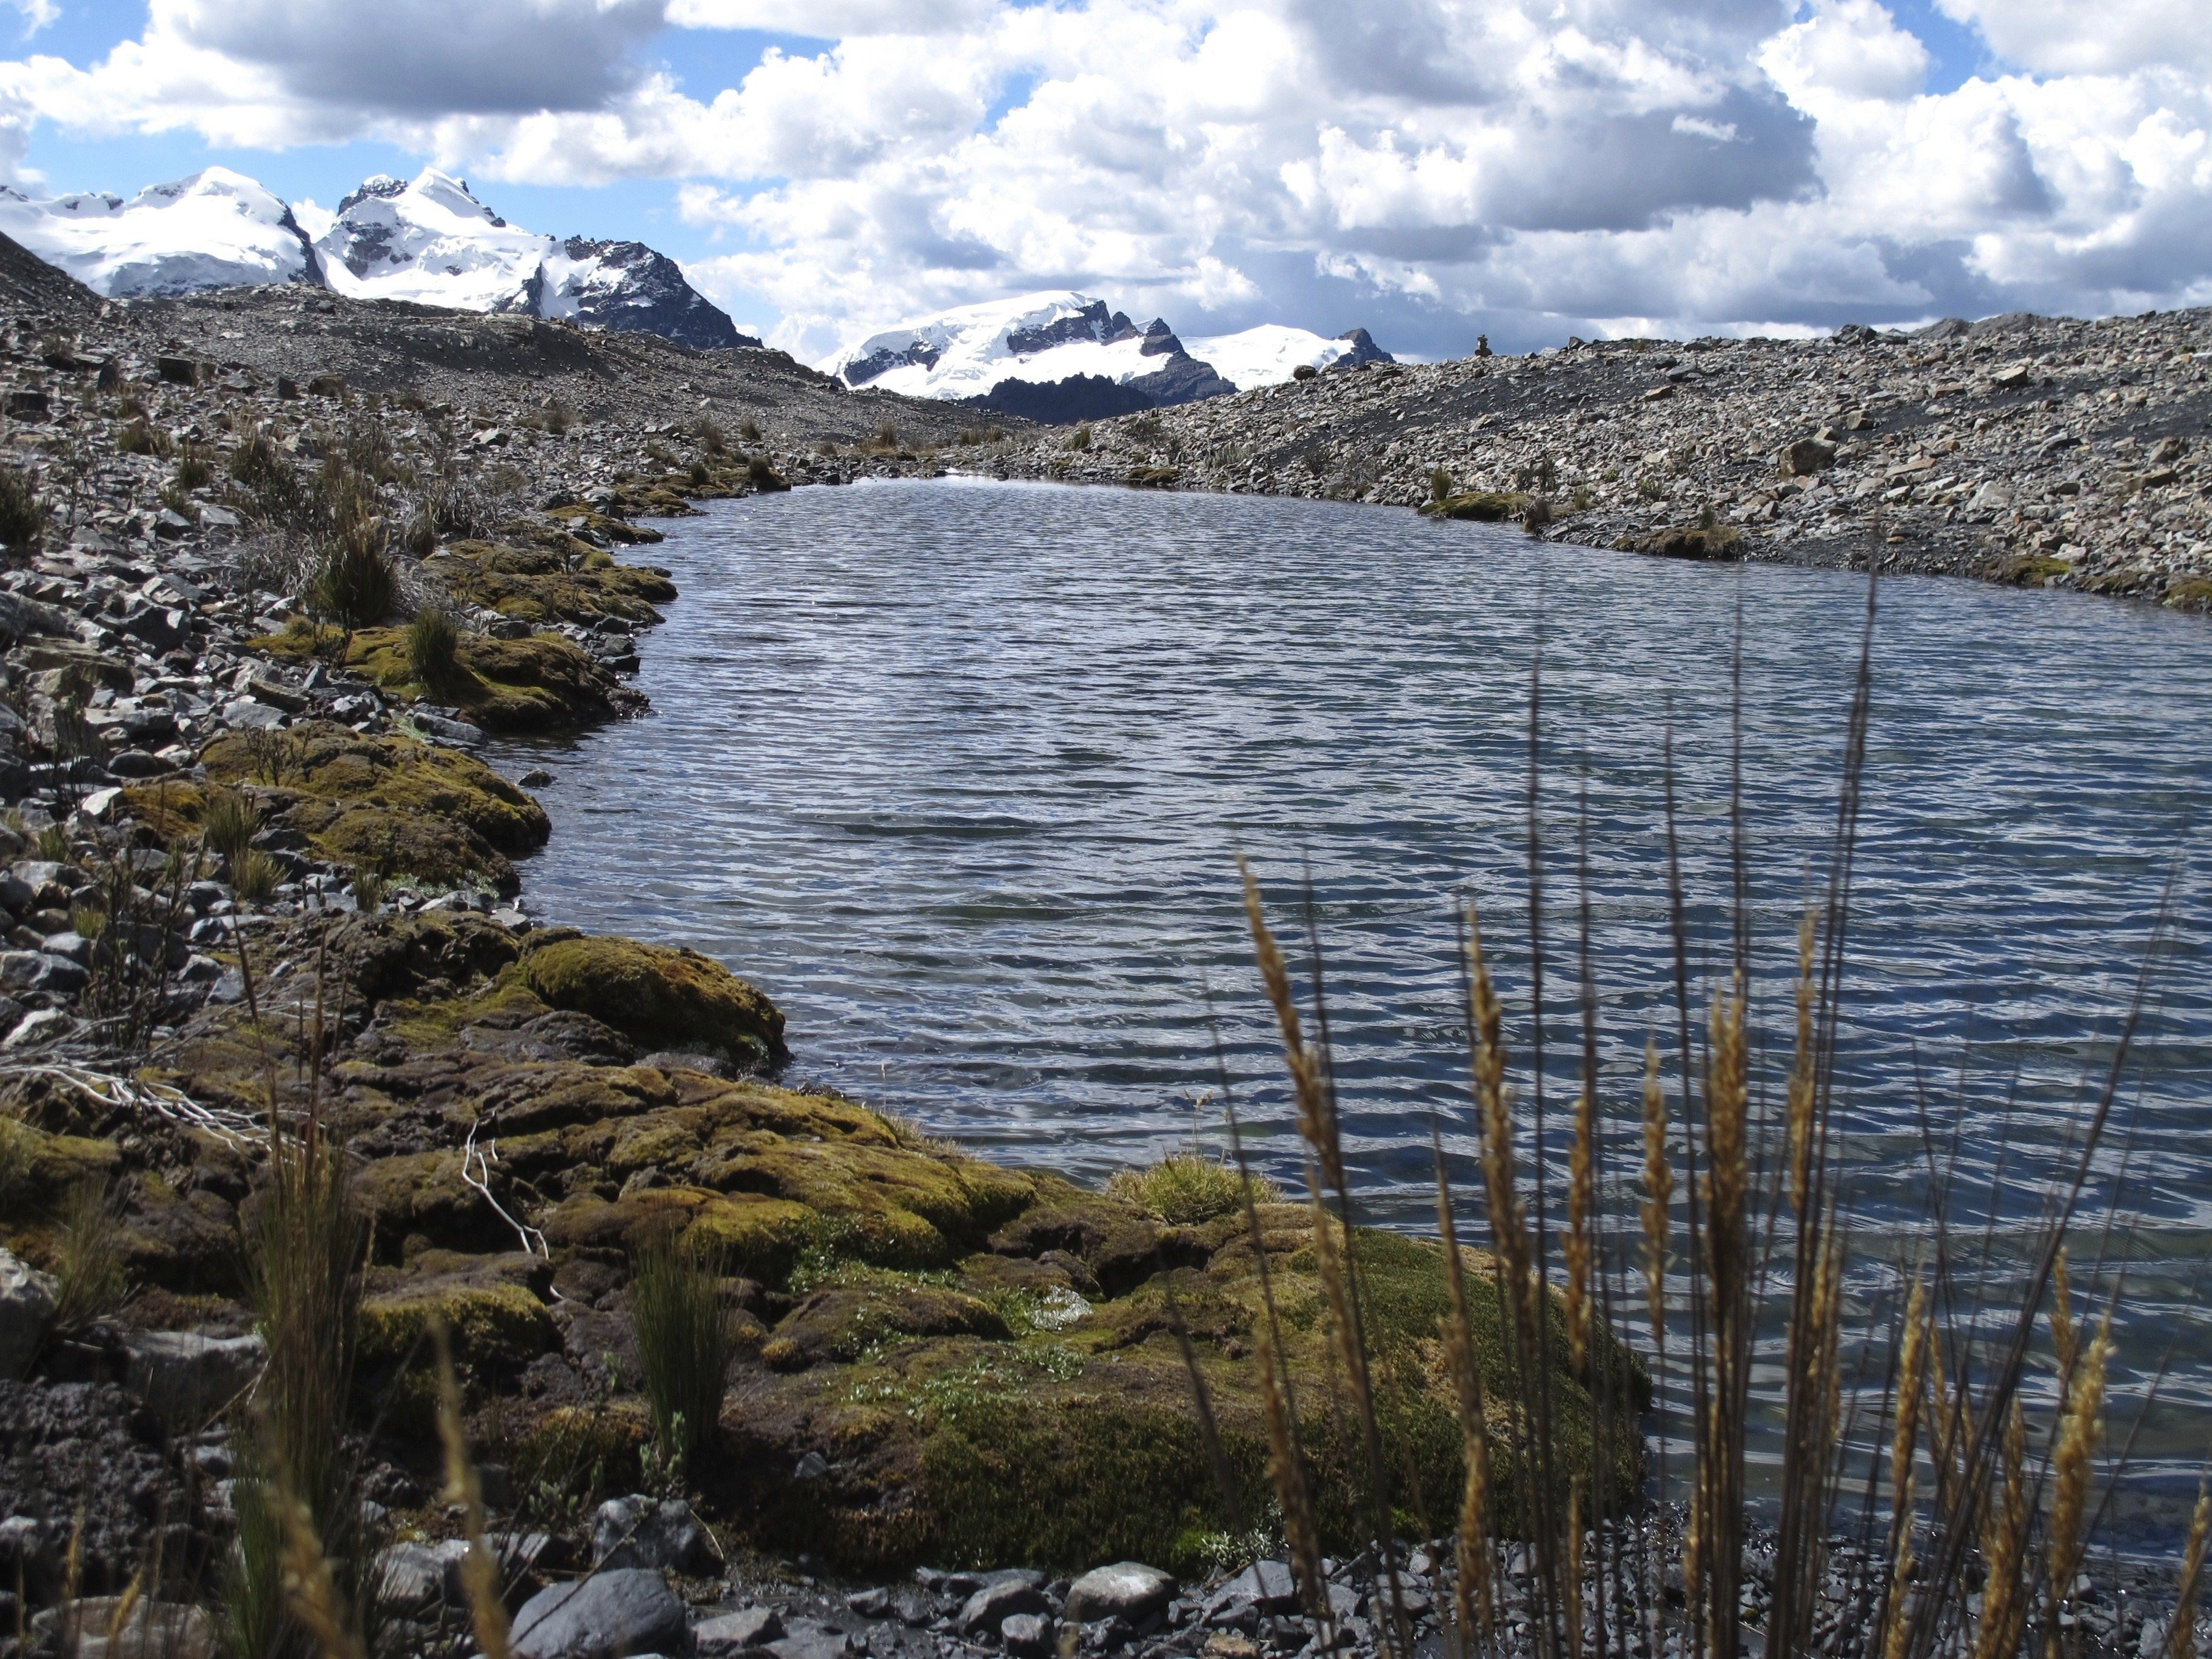 The Andes Mountains in the background with a lake in front.